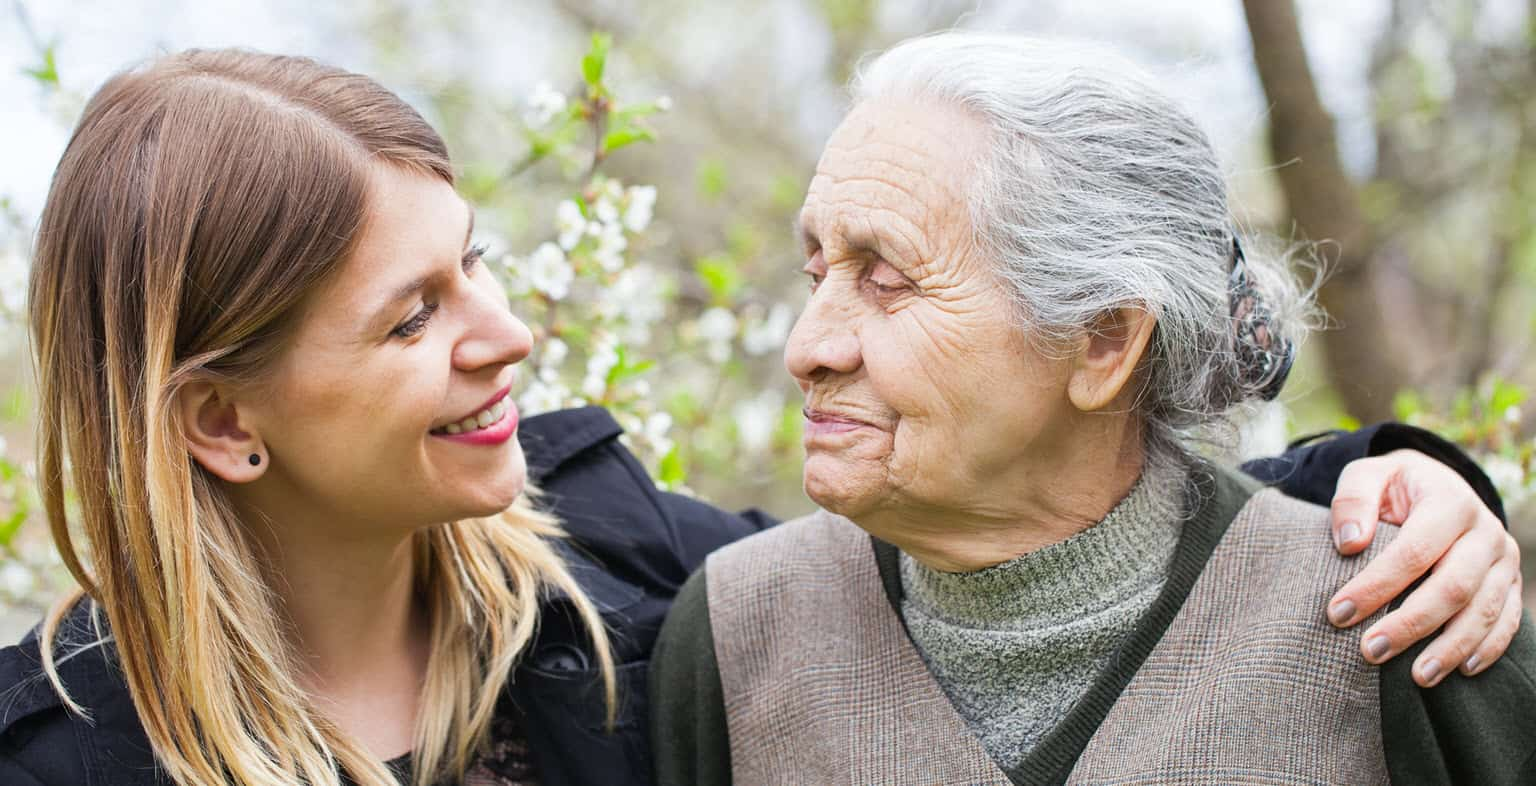 millenial caregiver - It's Time to Support Young Caregivers